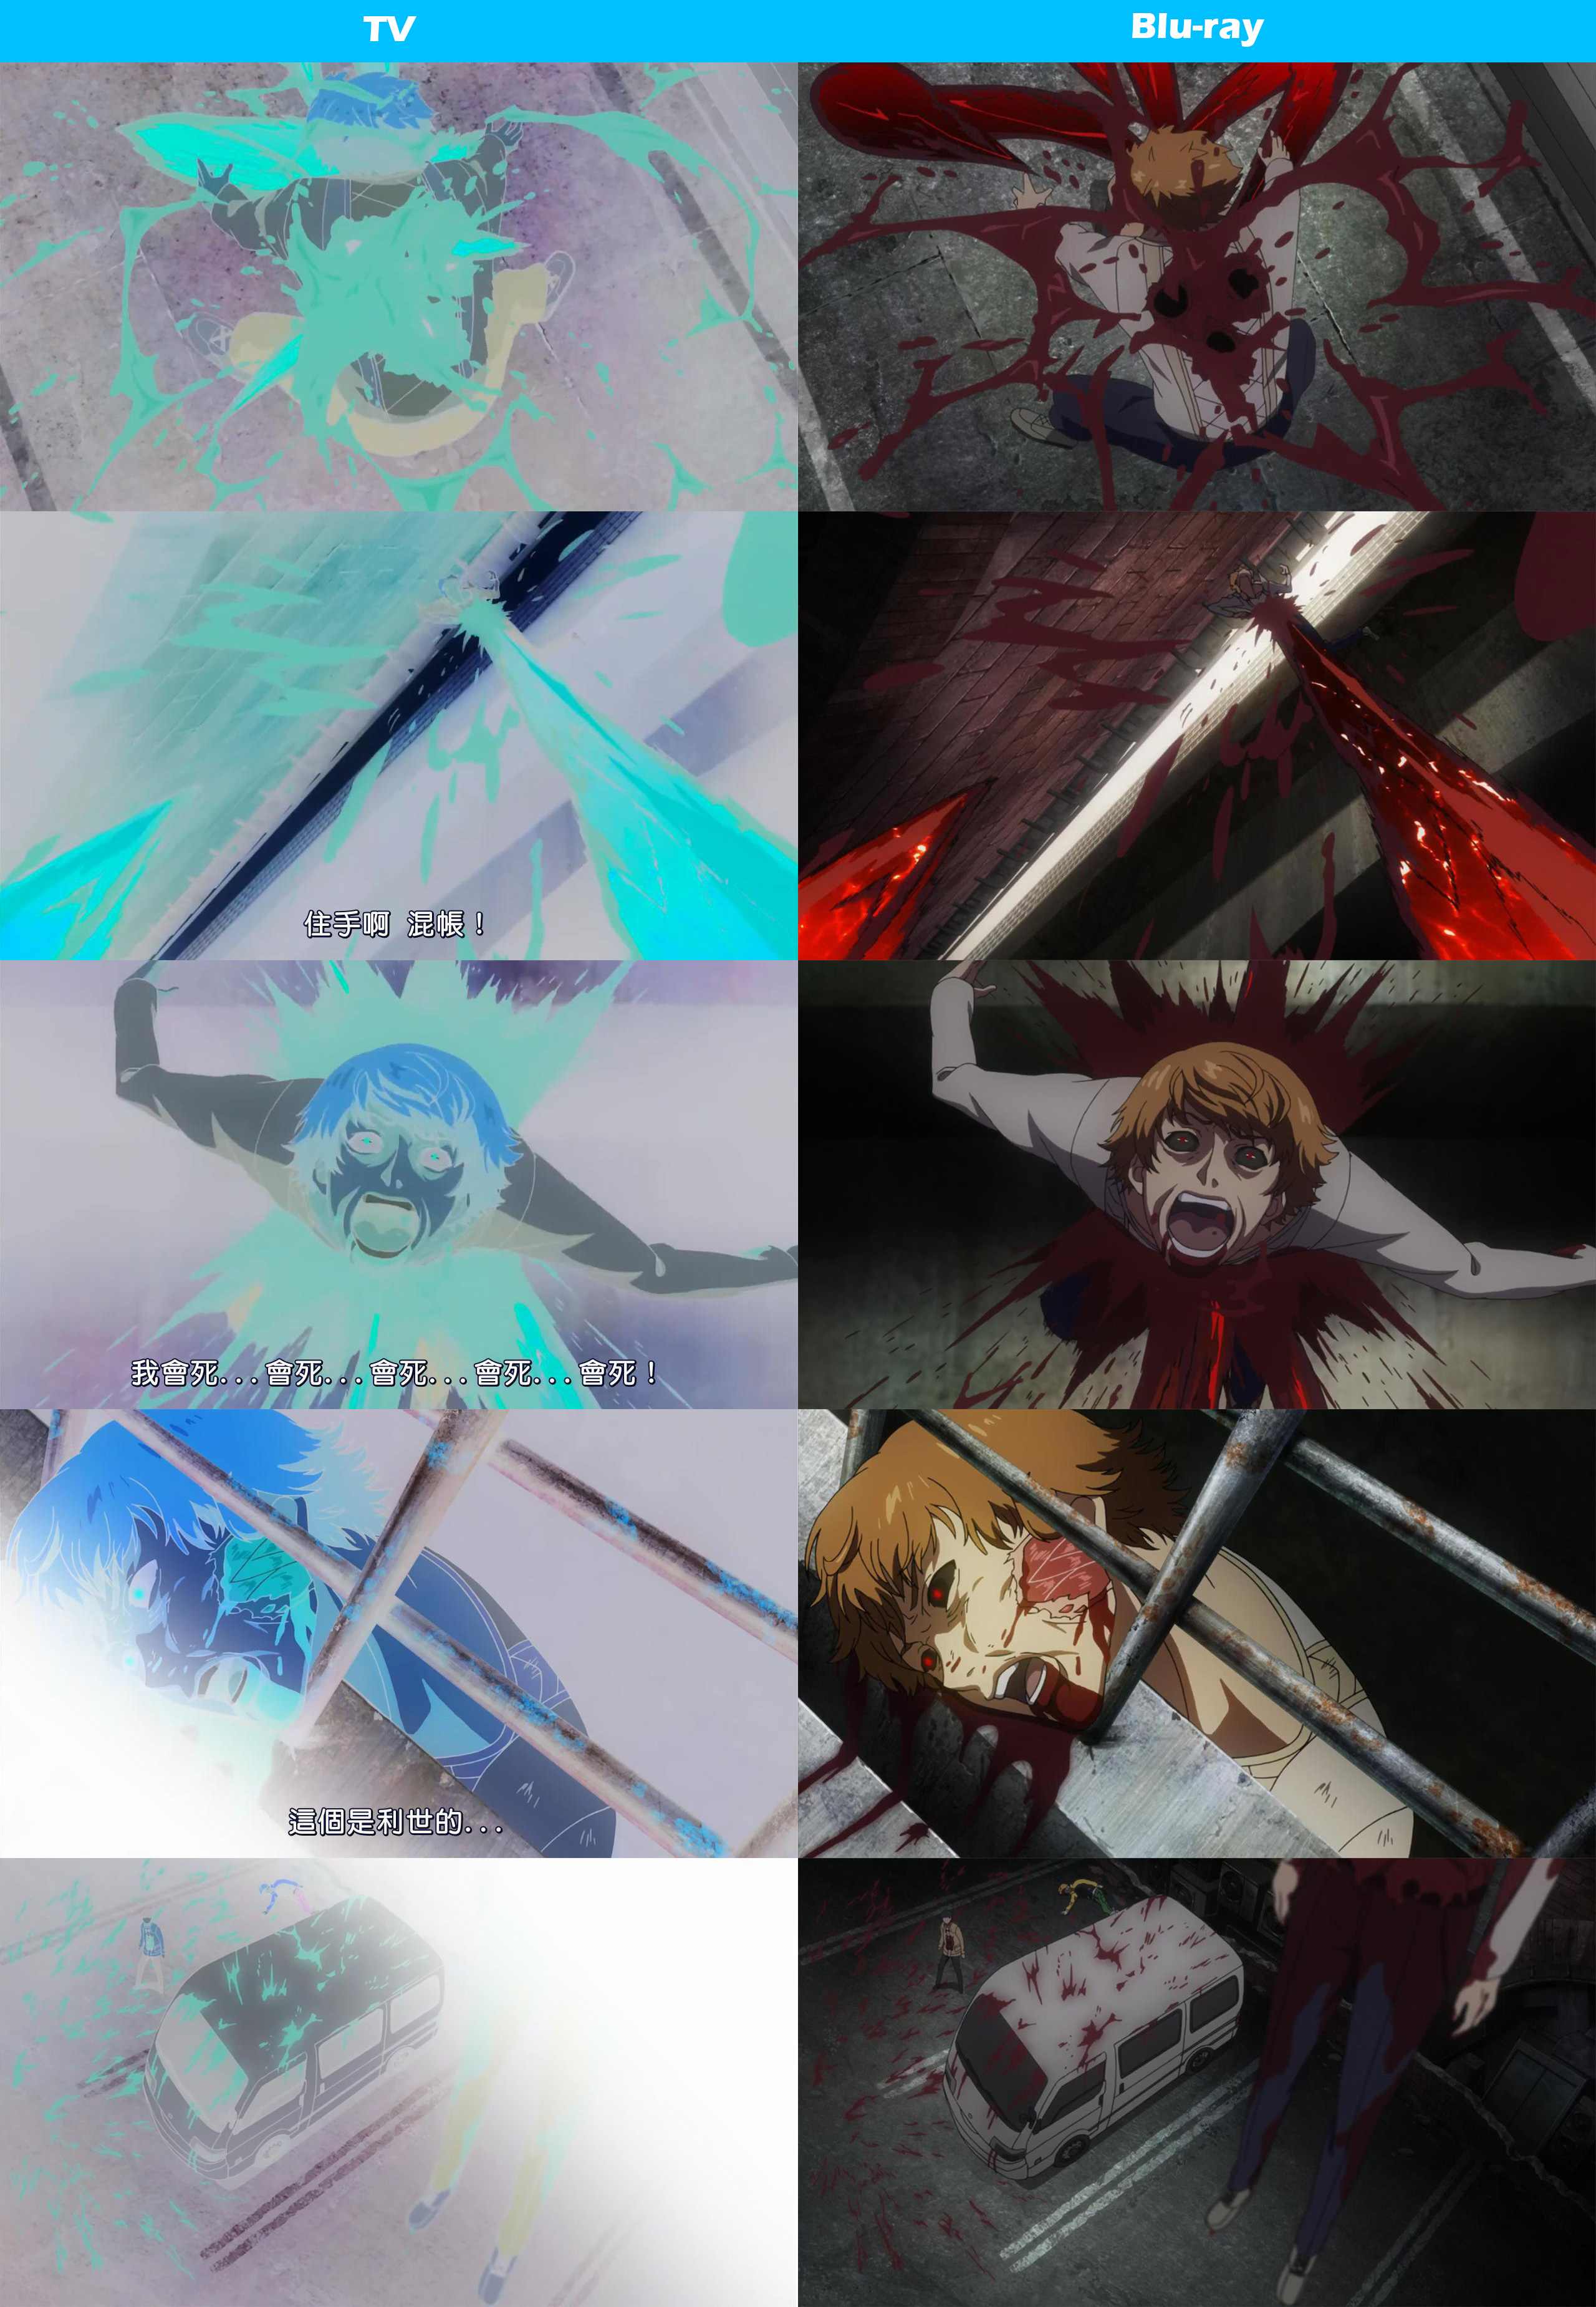 Tokyo-Ghoul---TV-and-Blu-ray-Comparison-Image-4